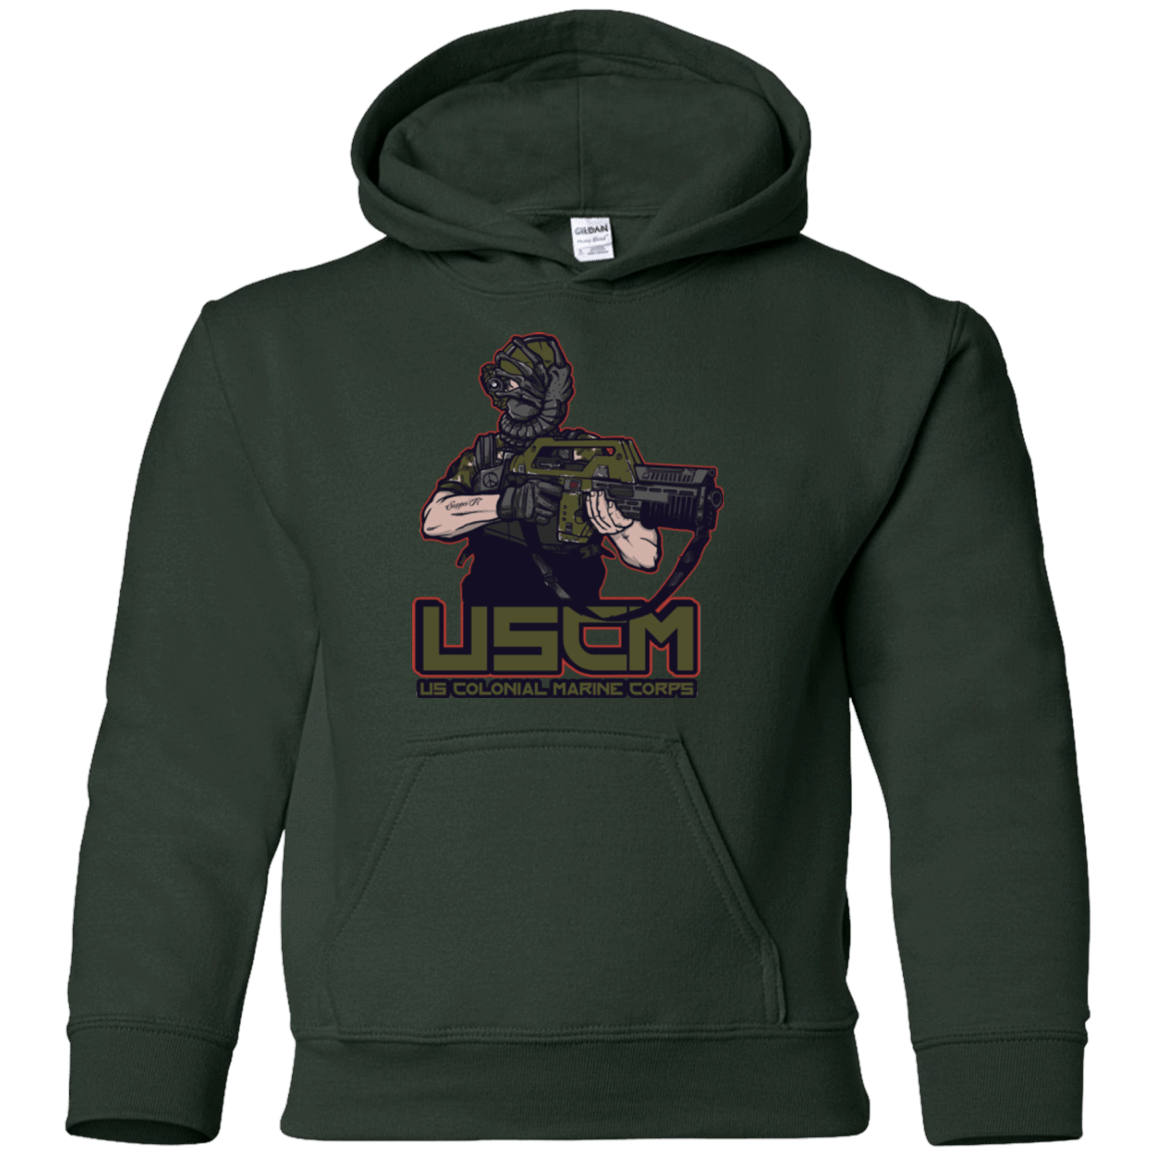 Sweatshirts Forest Green / YS Colonial Facehugger Youth Hoodie